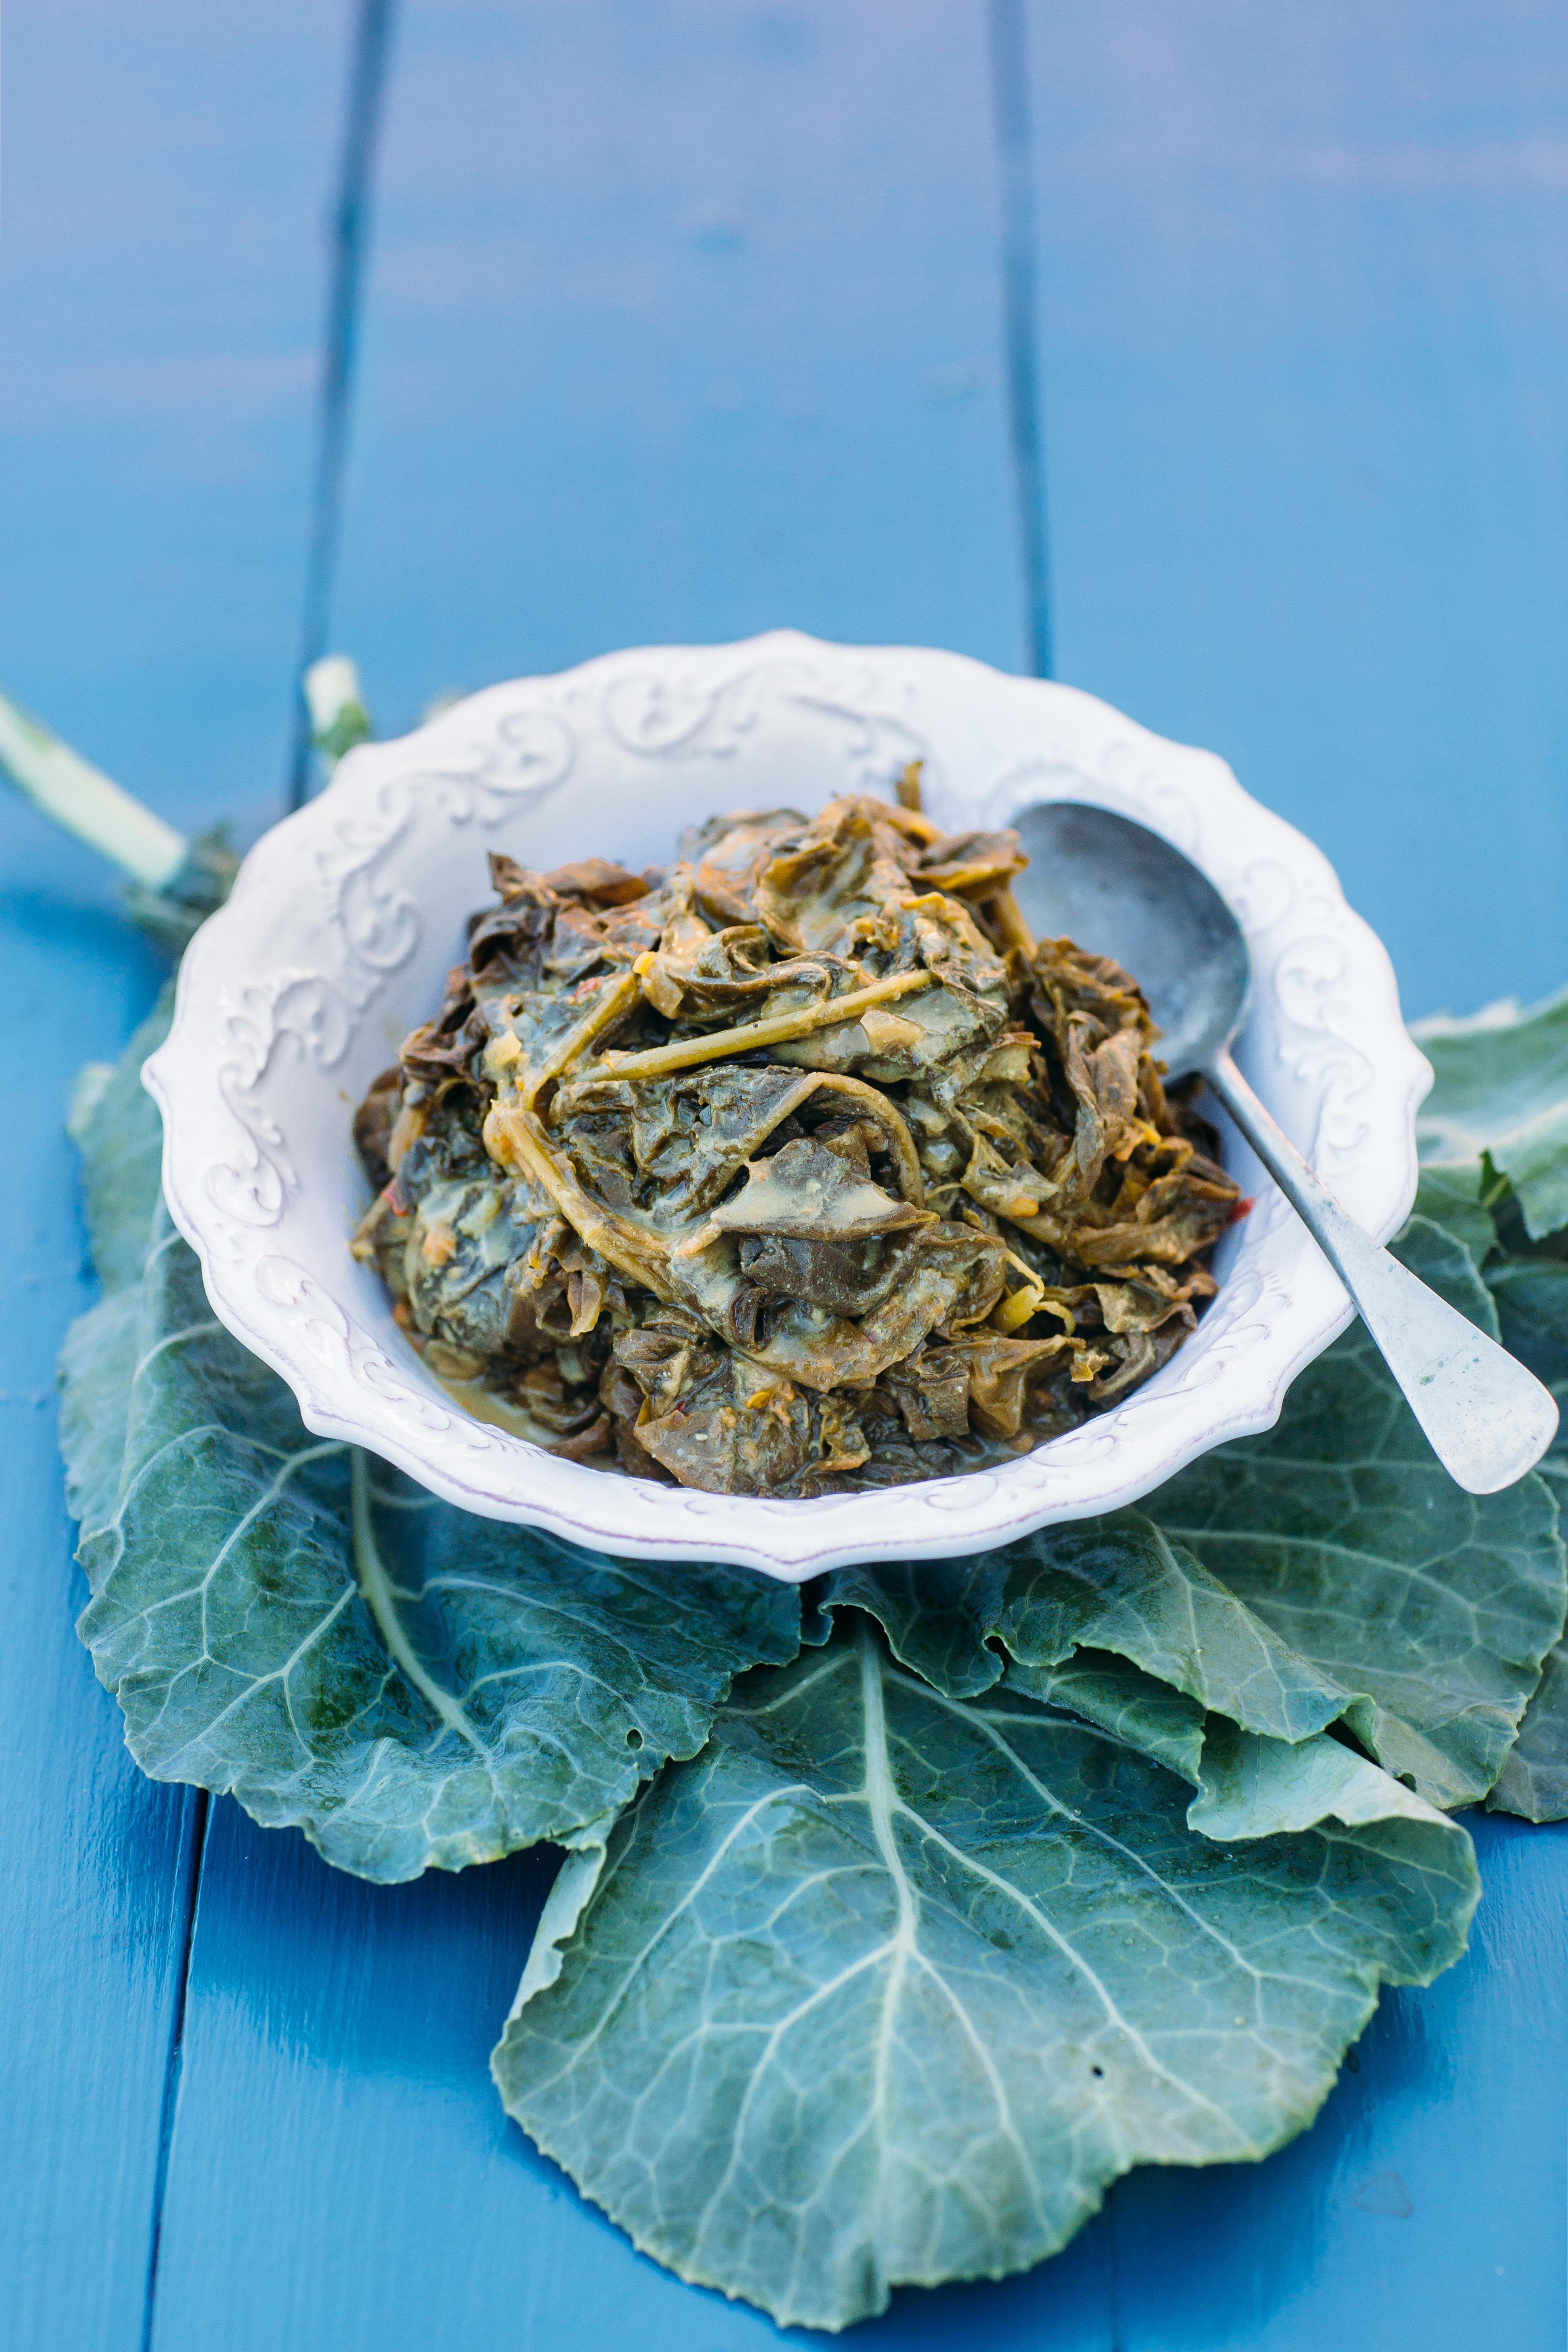 Collards Callaloo, made by Biscuit Head. (Photo credit:  Tim Robison Creative)